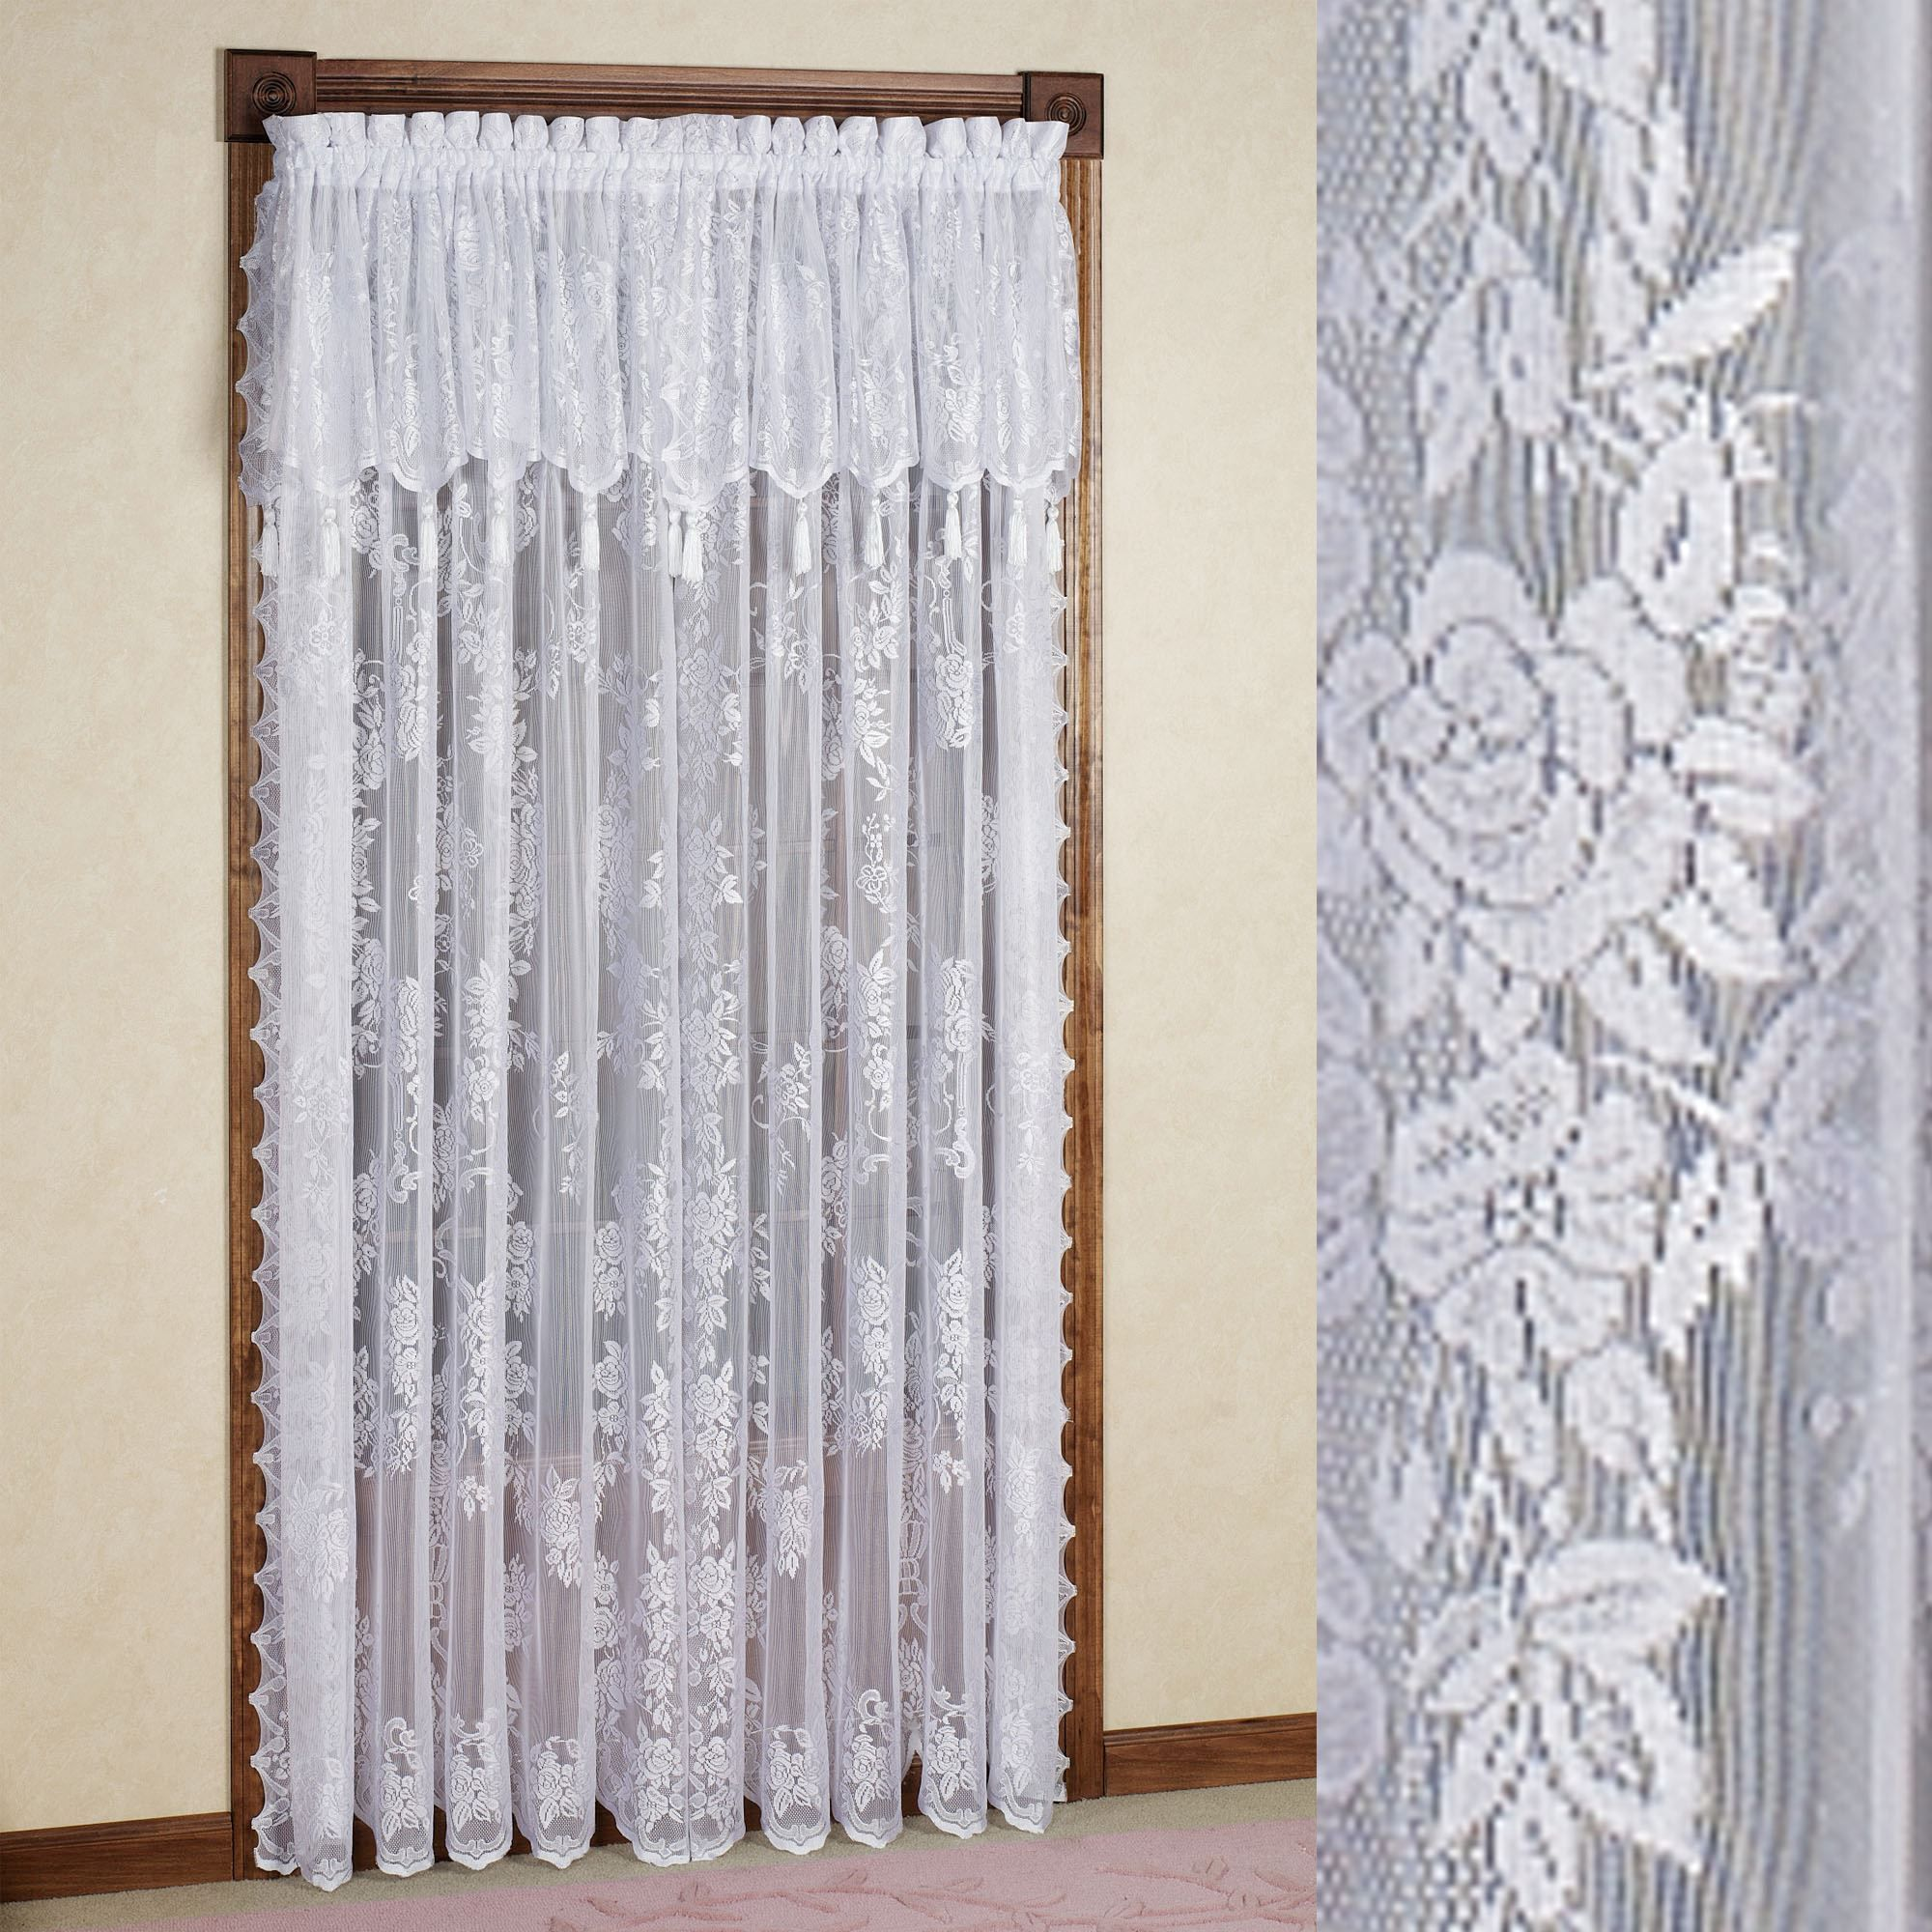 Exquisite Lace Curtains For Your Vintage Home Interior Lace